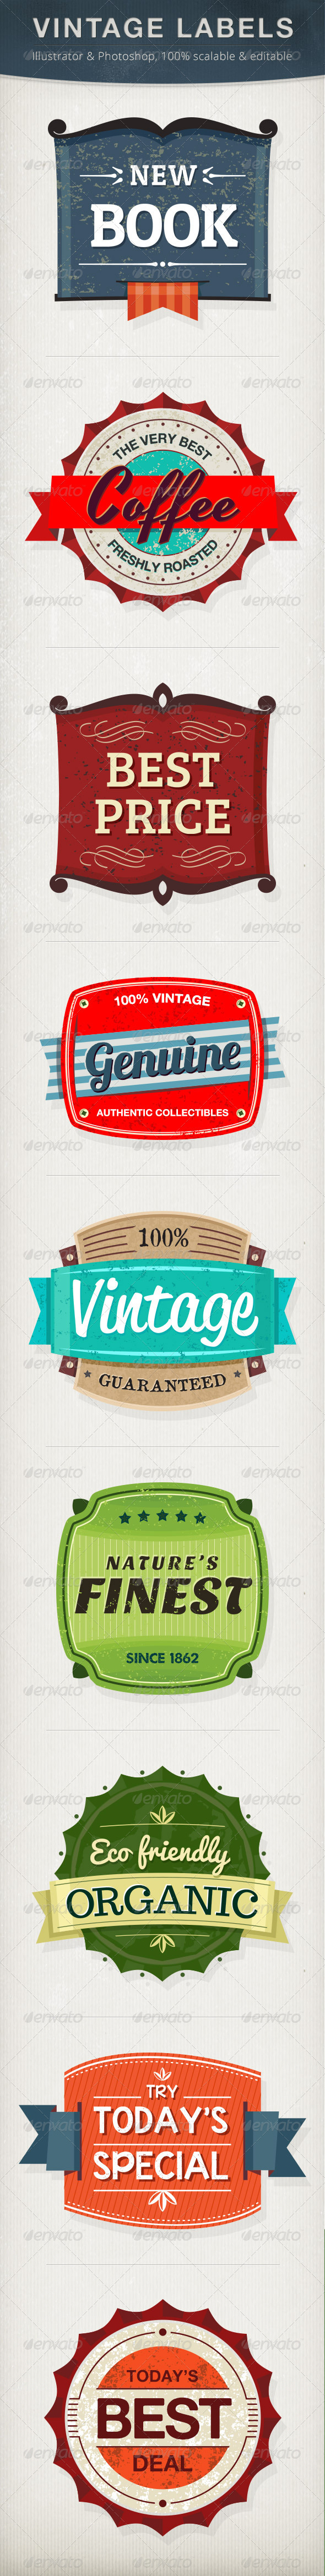 Vintage Labels - Badges &amp; Stickers Web Elements